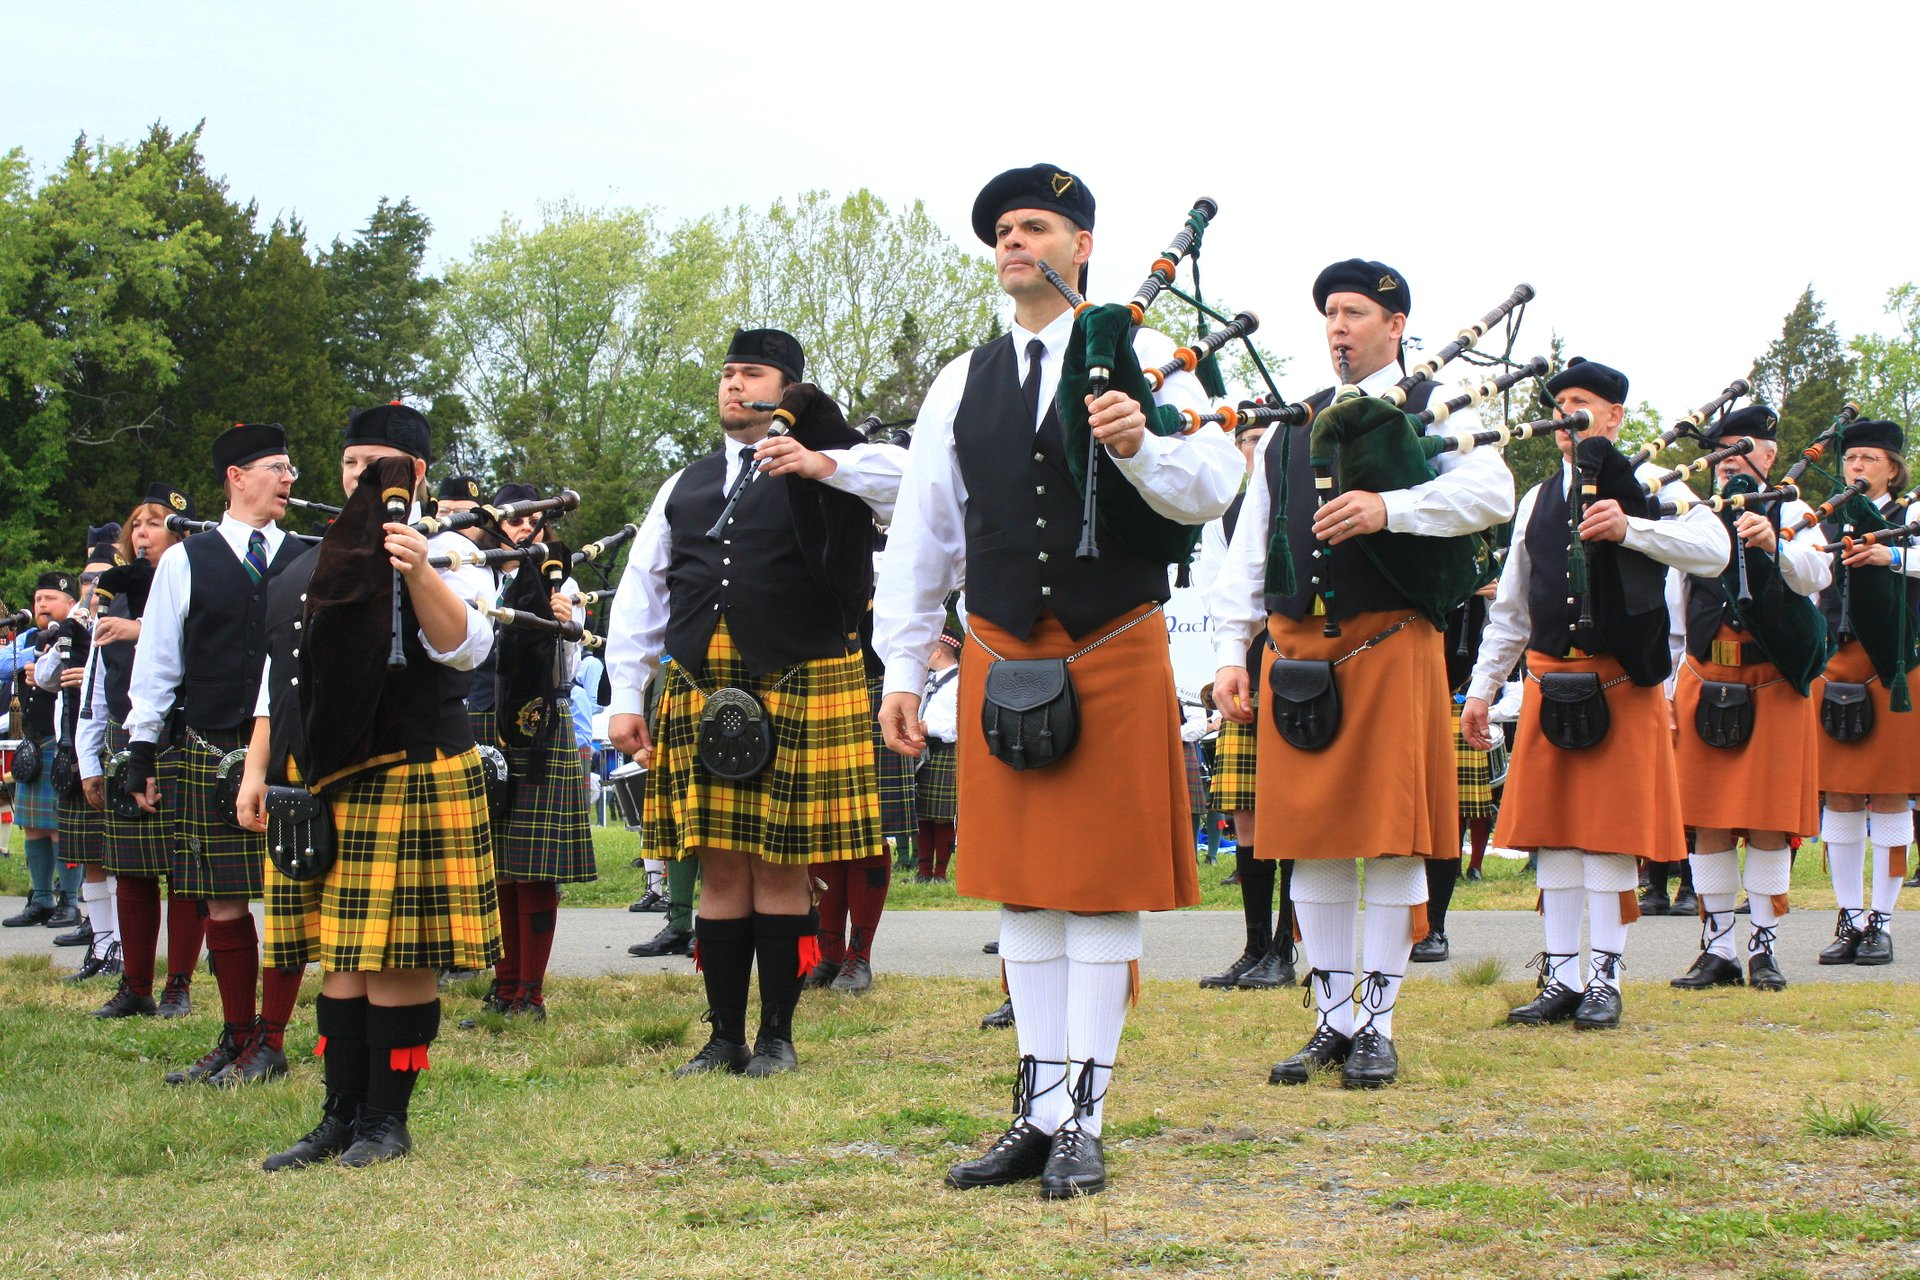 Scottish Festival 2020.Southern Maryland Celtic Festival 2020 Dates Map